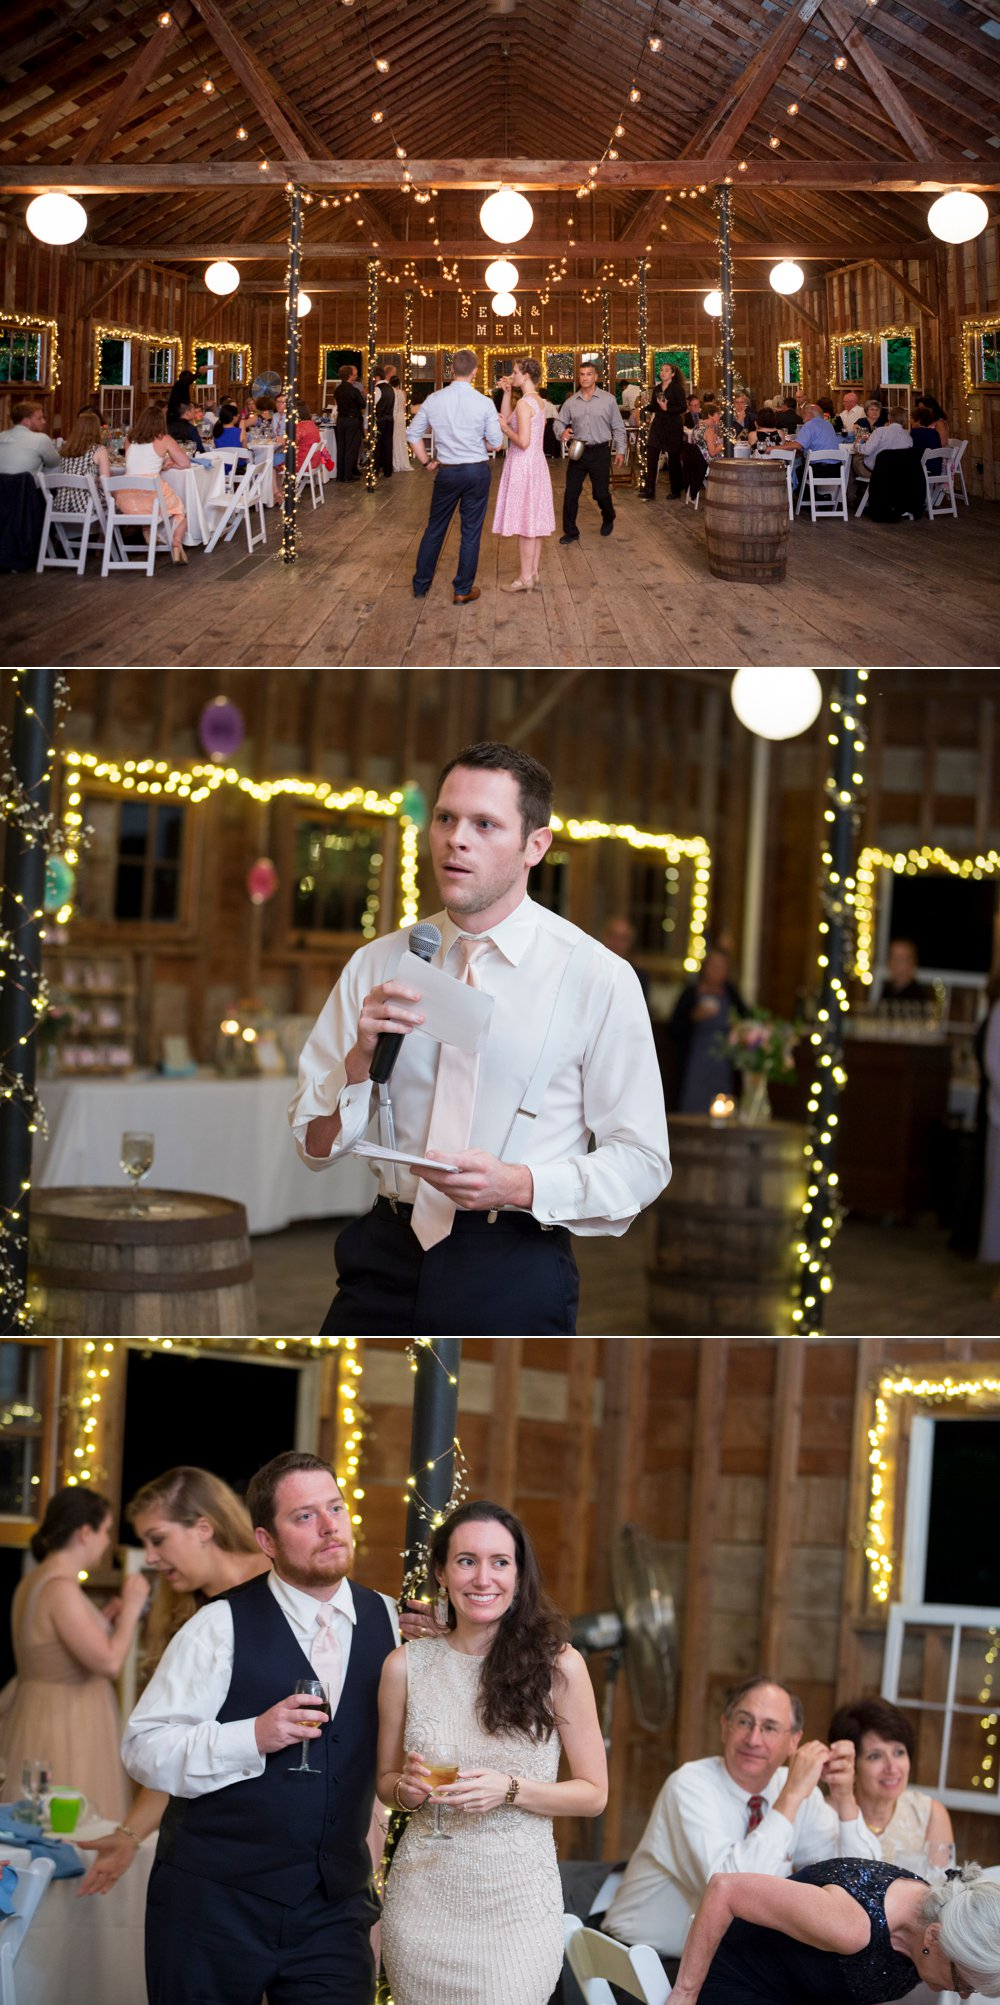 SomerbyJonesPhotography_WestMountainInnWedding_WestMountainInn_RusticVermontWedding_0054.jpg